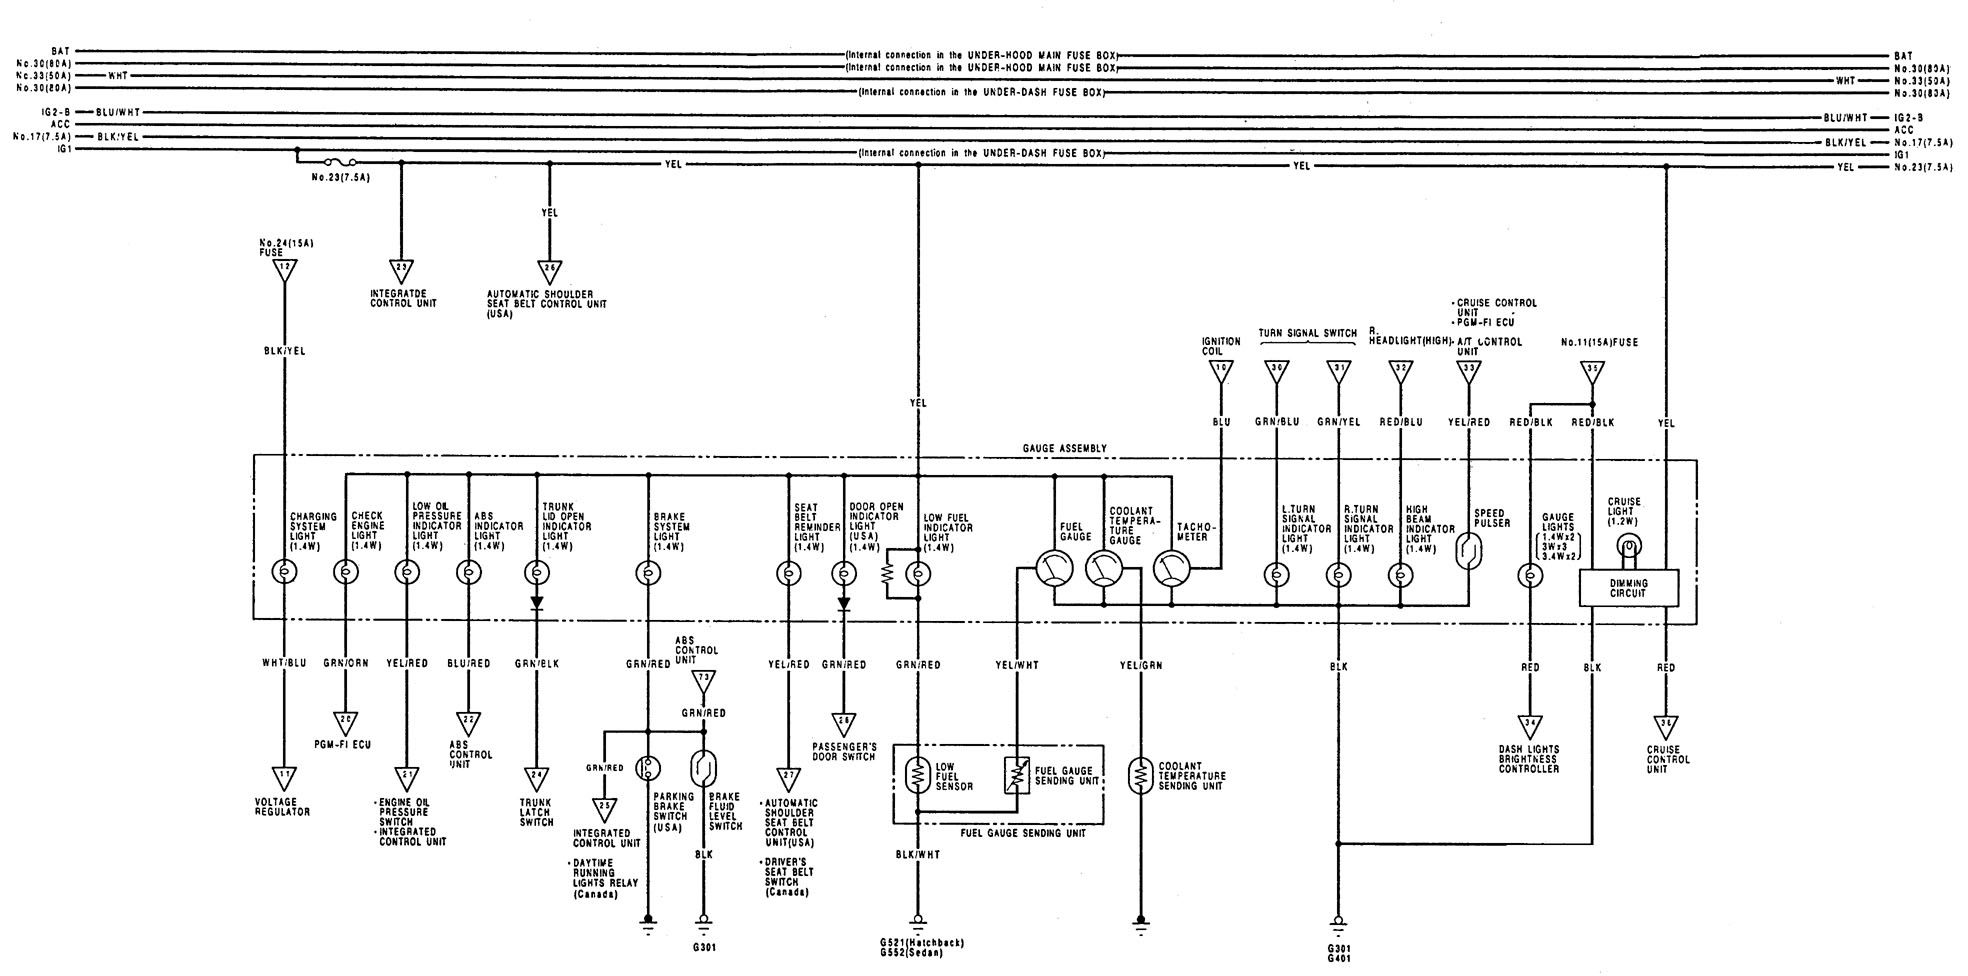 98 Nissan Quest Fuse Box Diagram Schematics Wiring Diagrams 2009 Fascinating 1993 Acura Integra Altima 1998